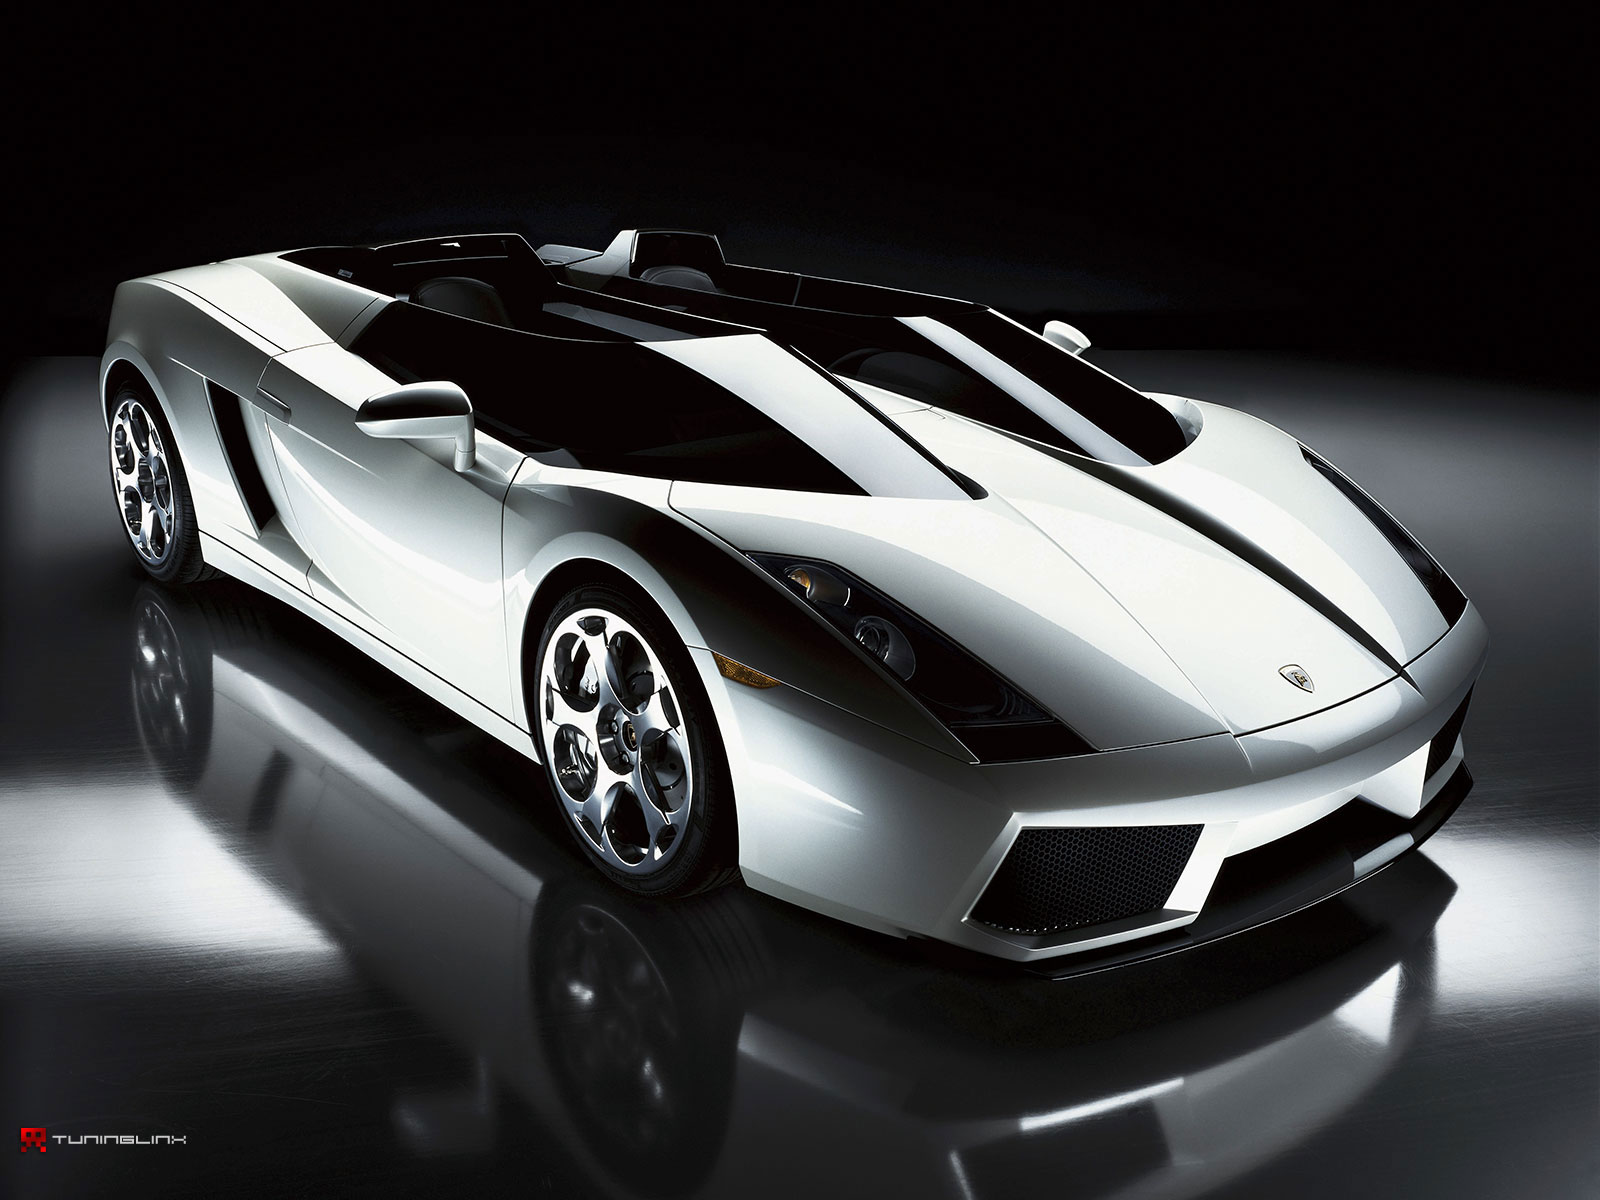 lamborghini car images hd photos